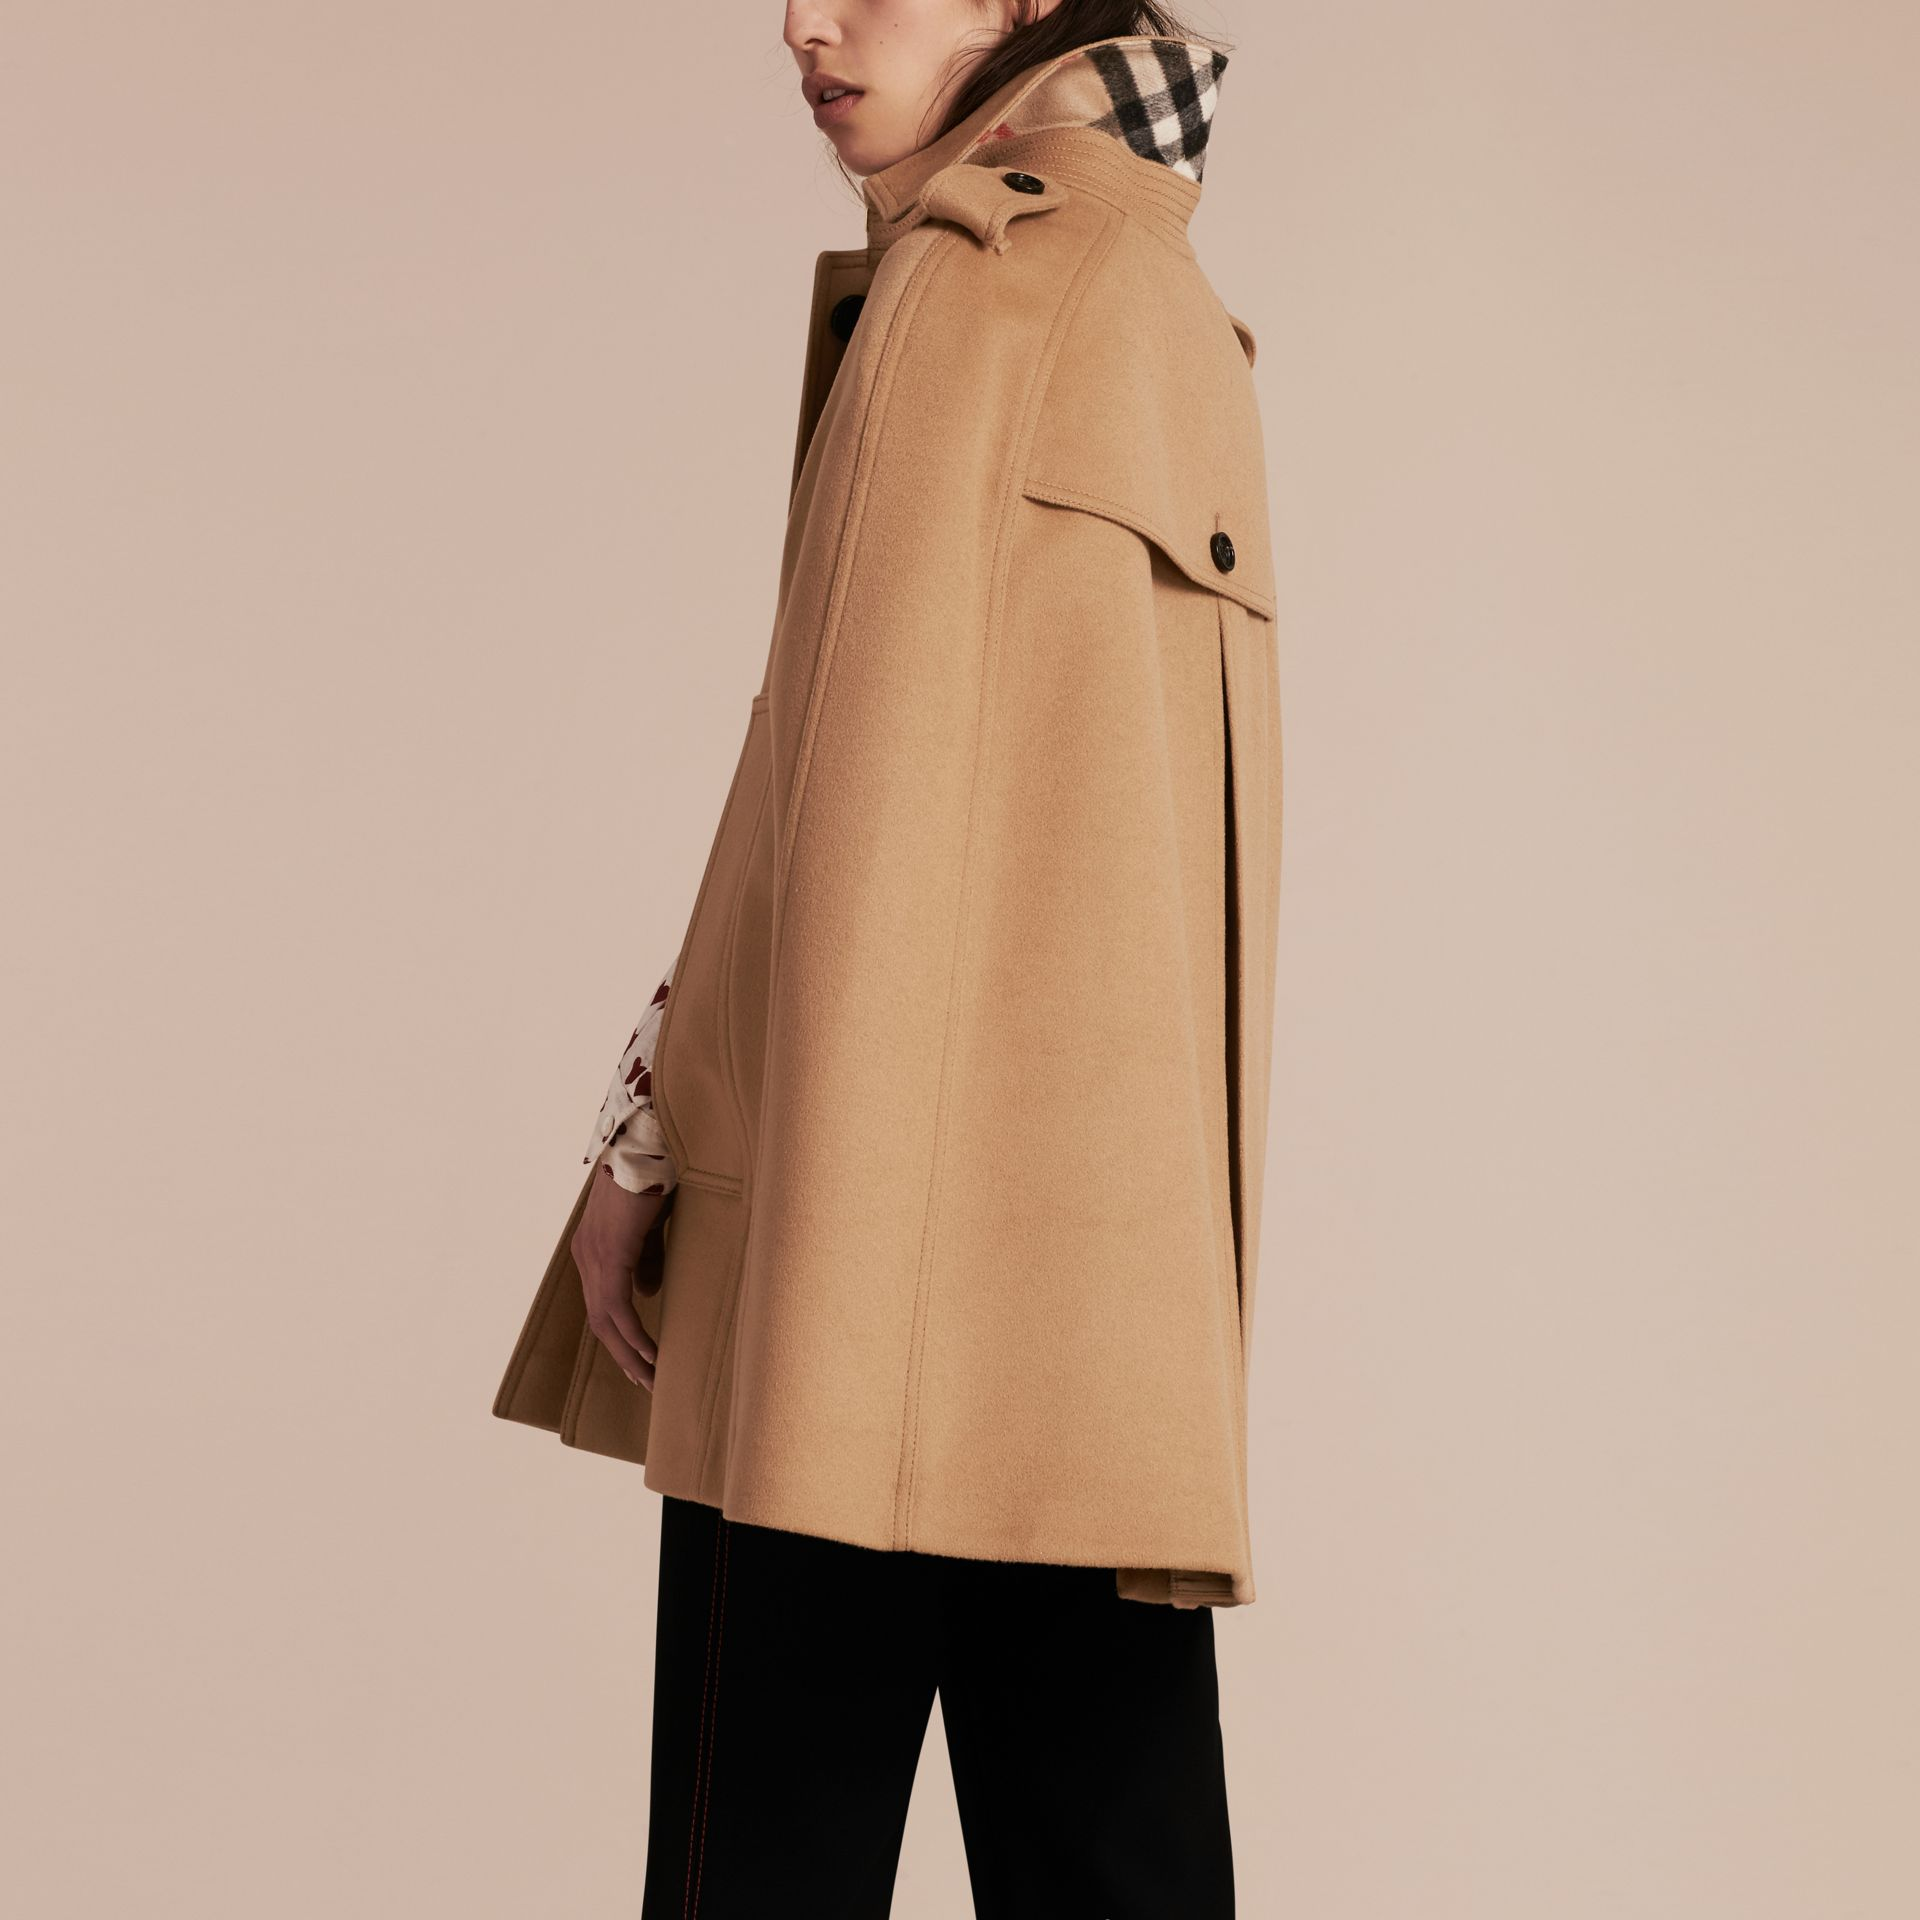 Camel Wool Cashmere Blend Trench Cape - gallery image 3